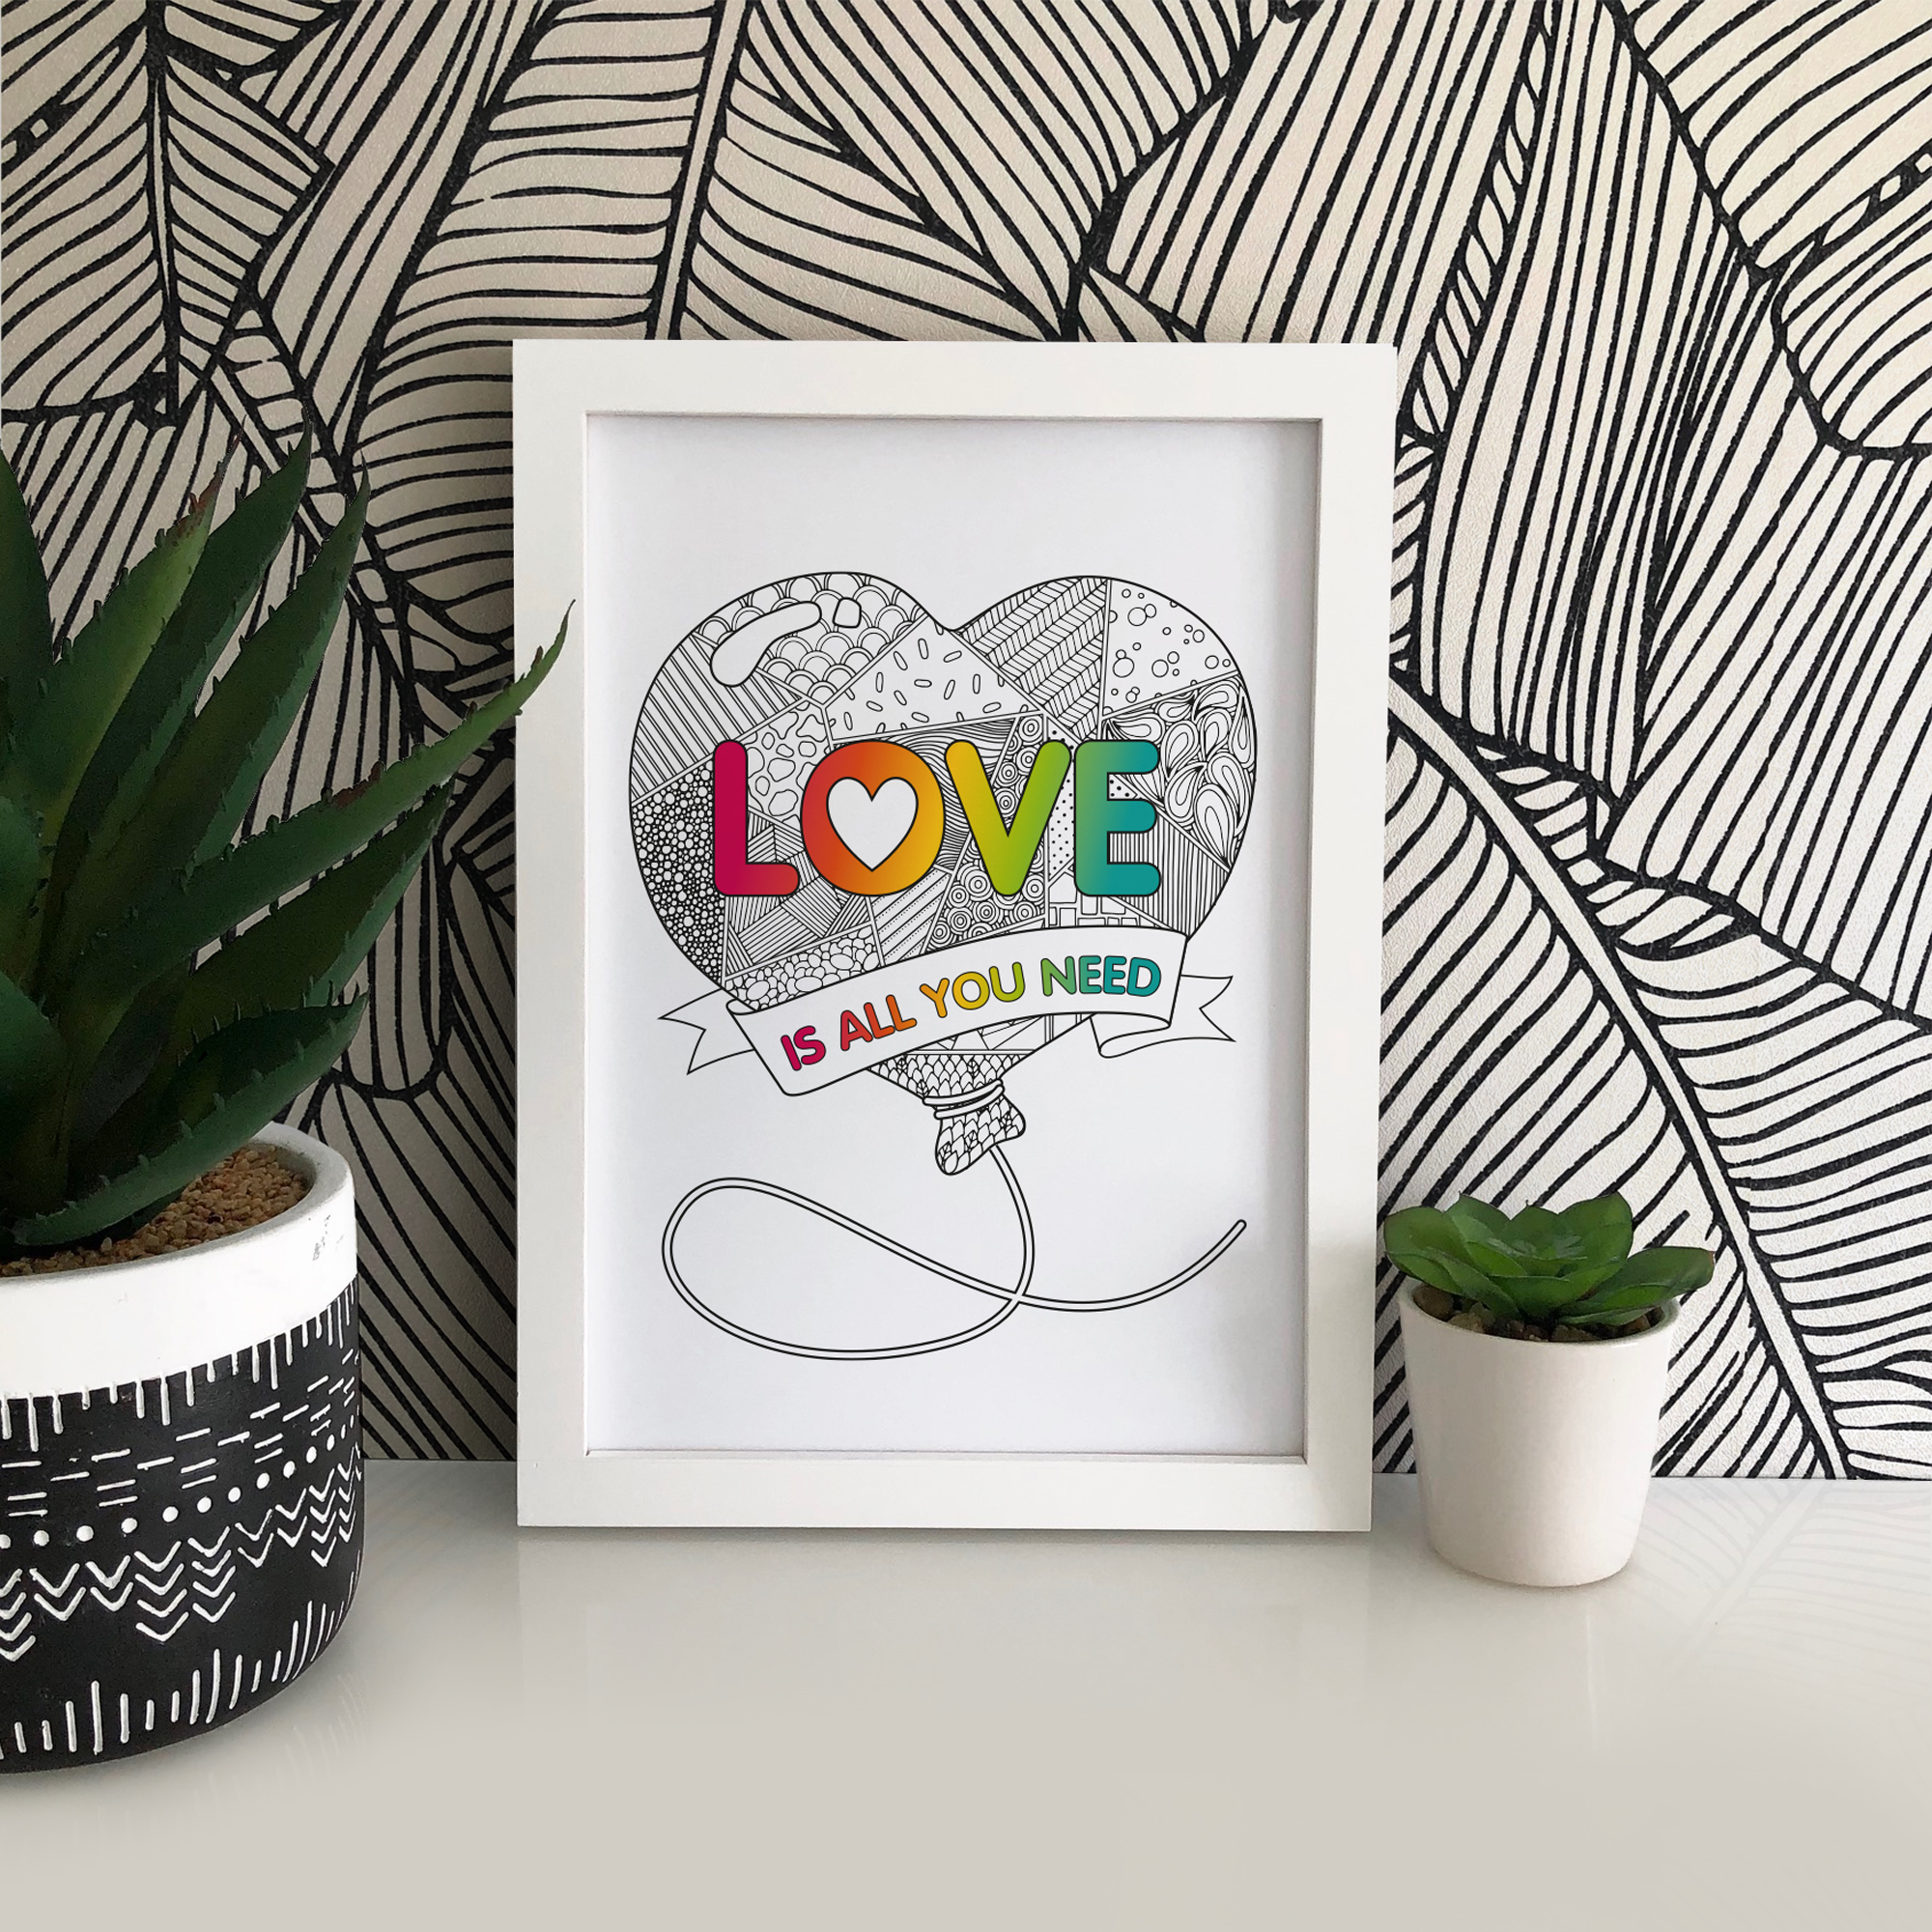 This lovely print of 'Love Is All You Need' is printed onto 190gsm archival matte paper for excellent crispness of details and vibrancy of colour.